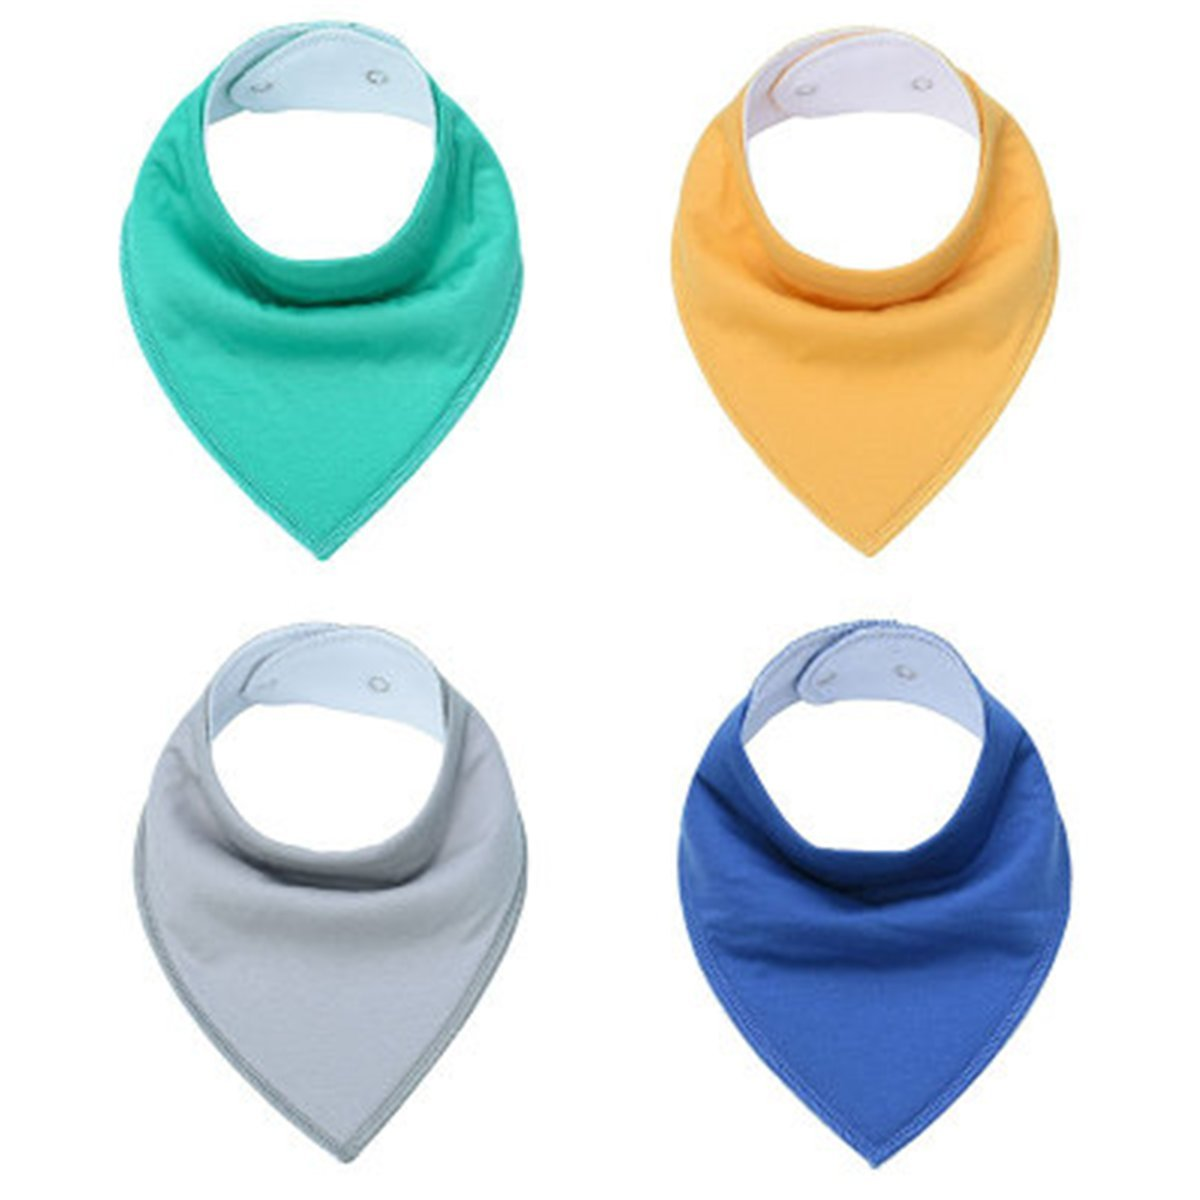 Solid Bandana Drool Bibs for Boys and Girls Super Absorbent Baby Gift Sets